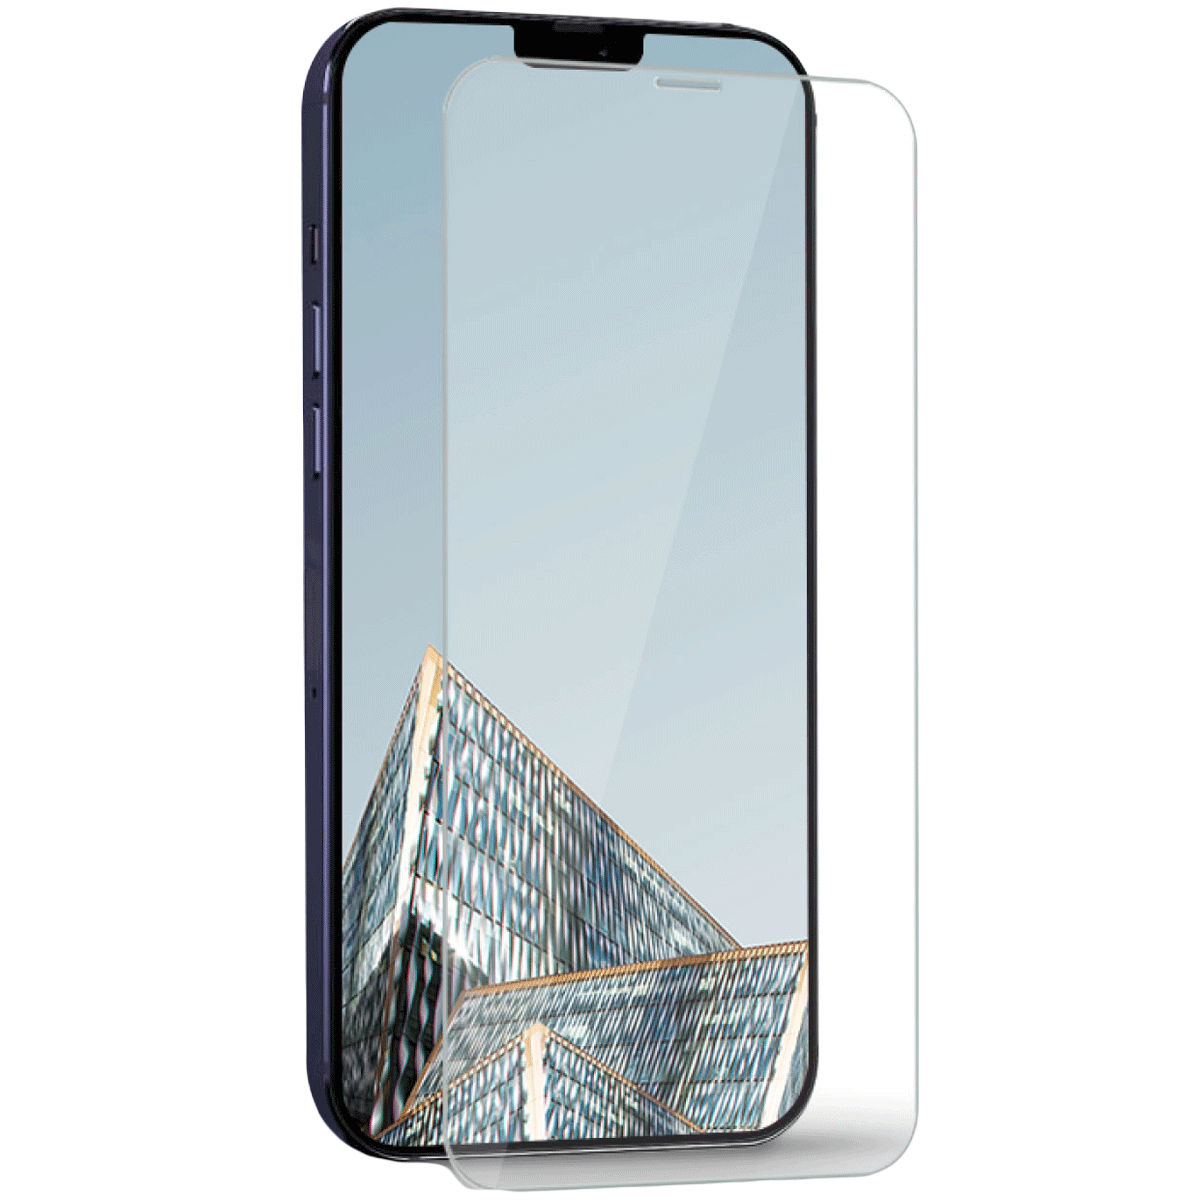 Hyphen Scratchgard Tempered Glass Screen Protector For iPhone 12 and iPhone 12 Pro (9H Hard Glass, HTG-CXII617640, Clear)_1